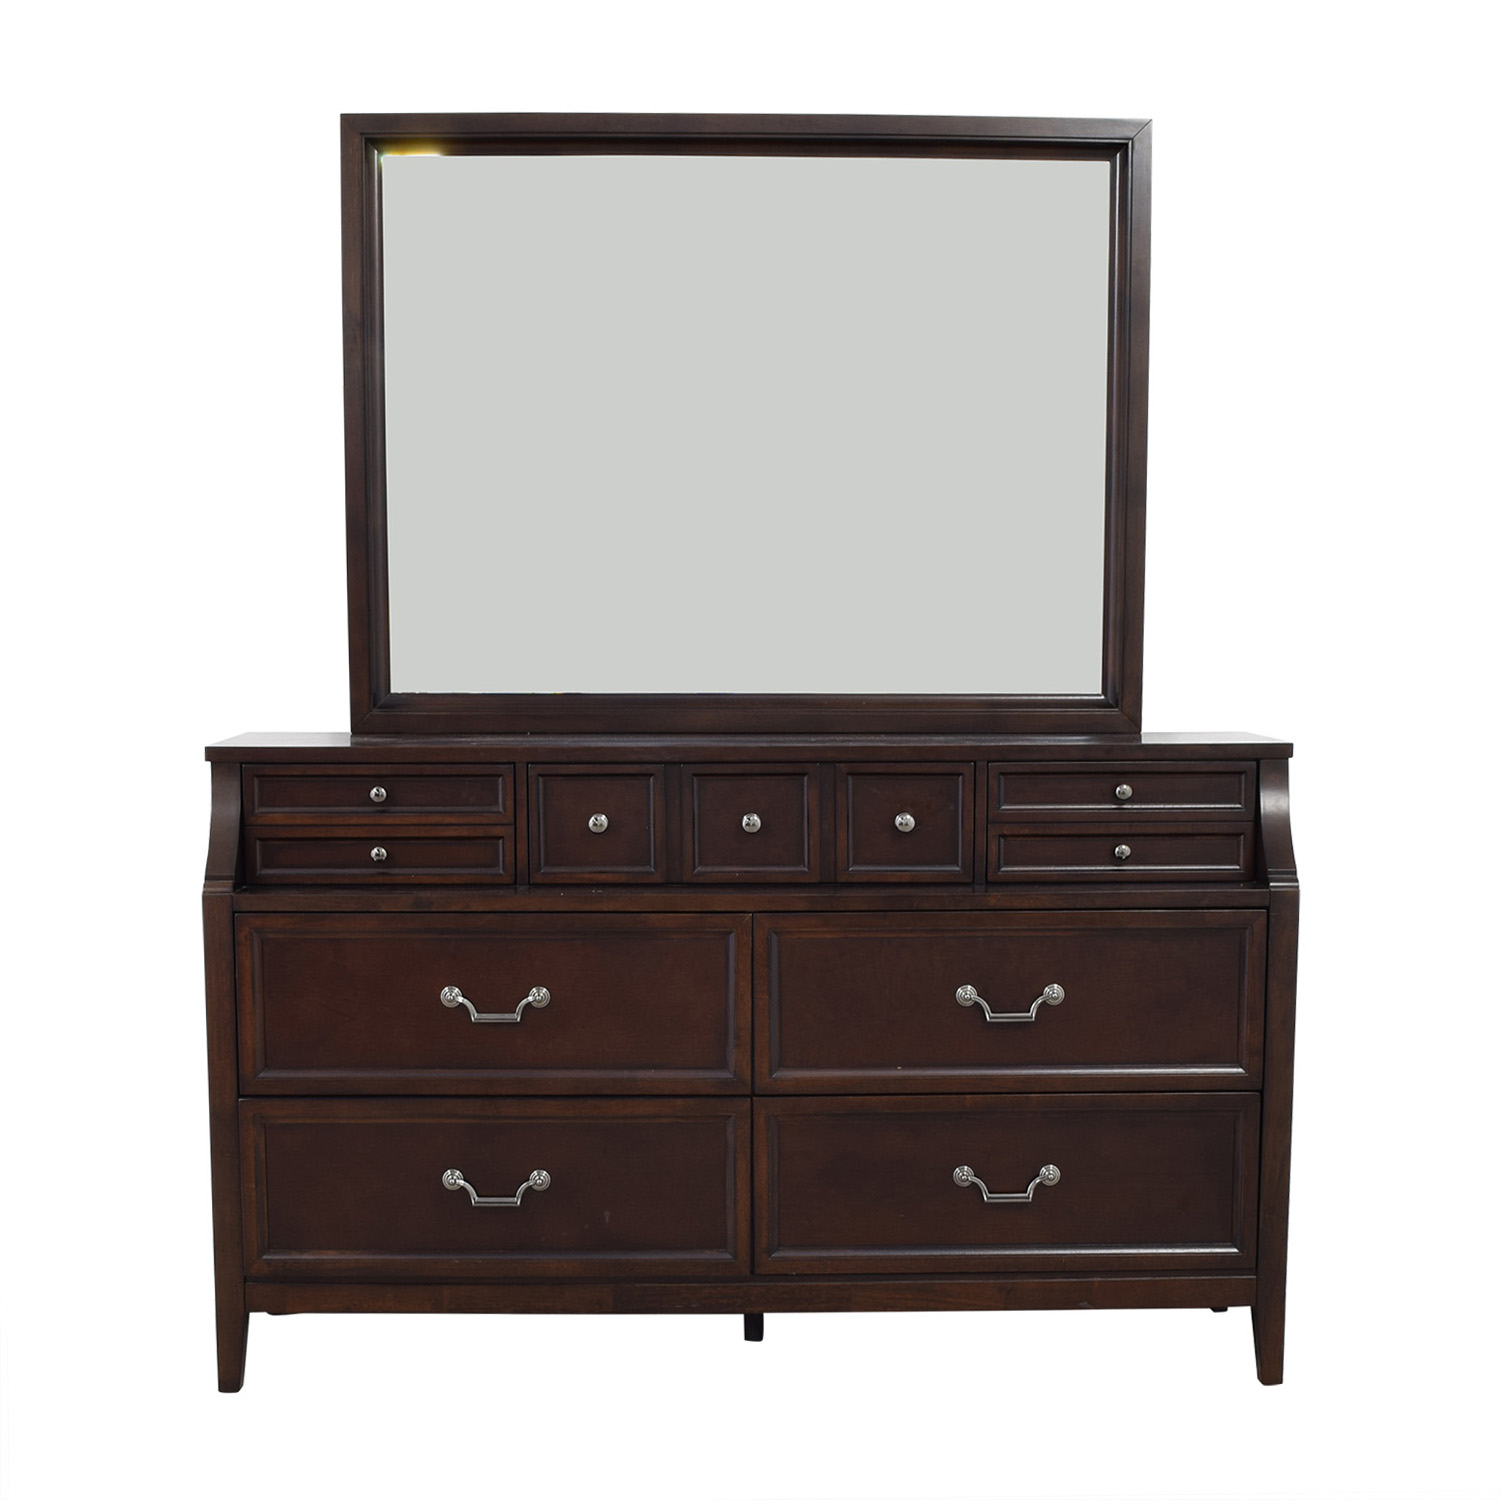 Raymour & Flanigan Raymour & Flanigan Seven-Drawers Wood Dresser with Mirror second hand